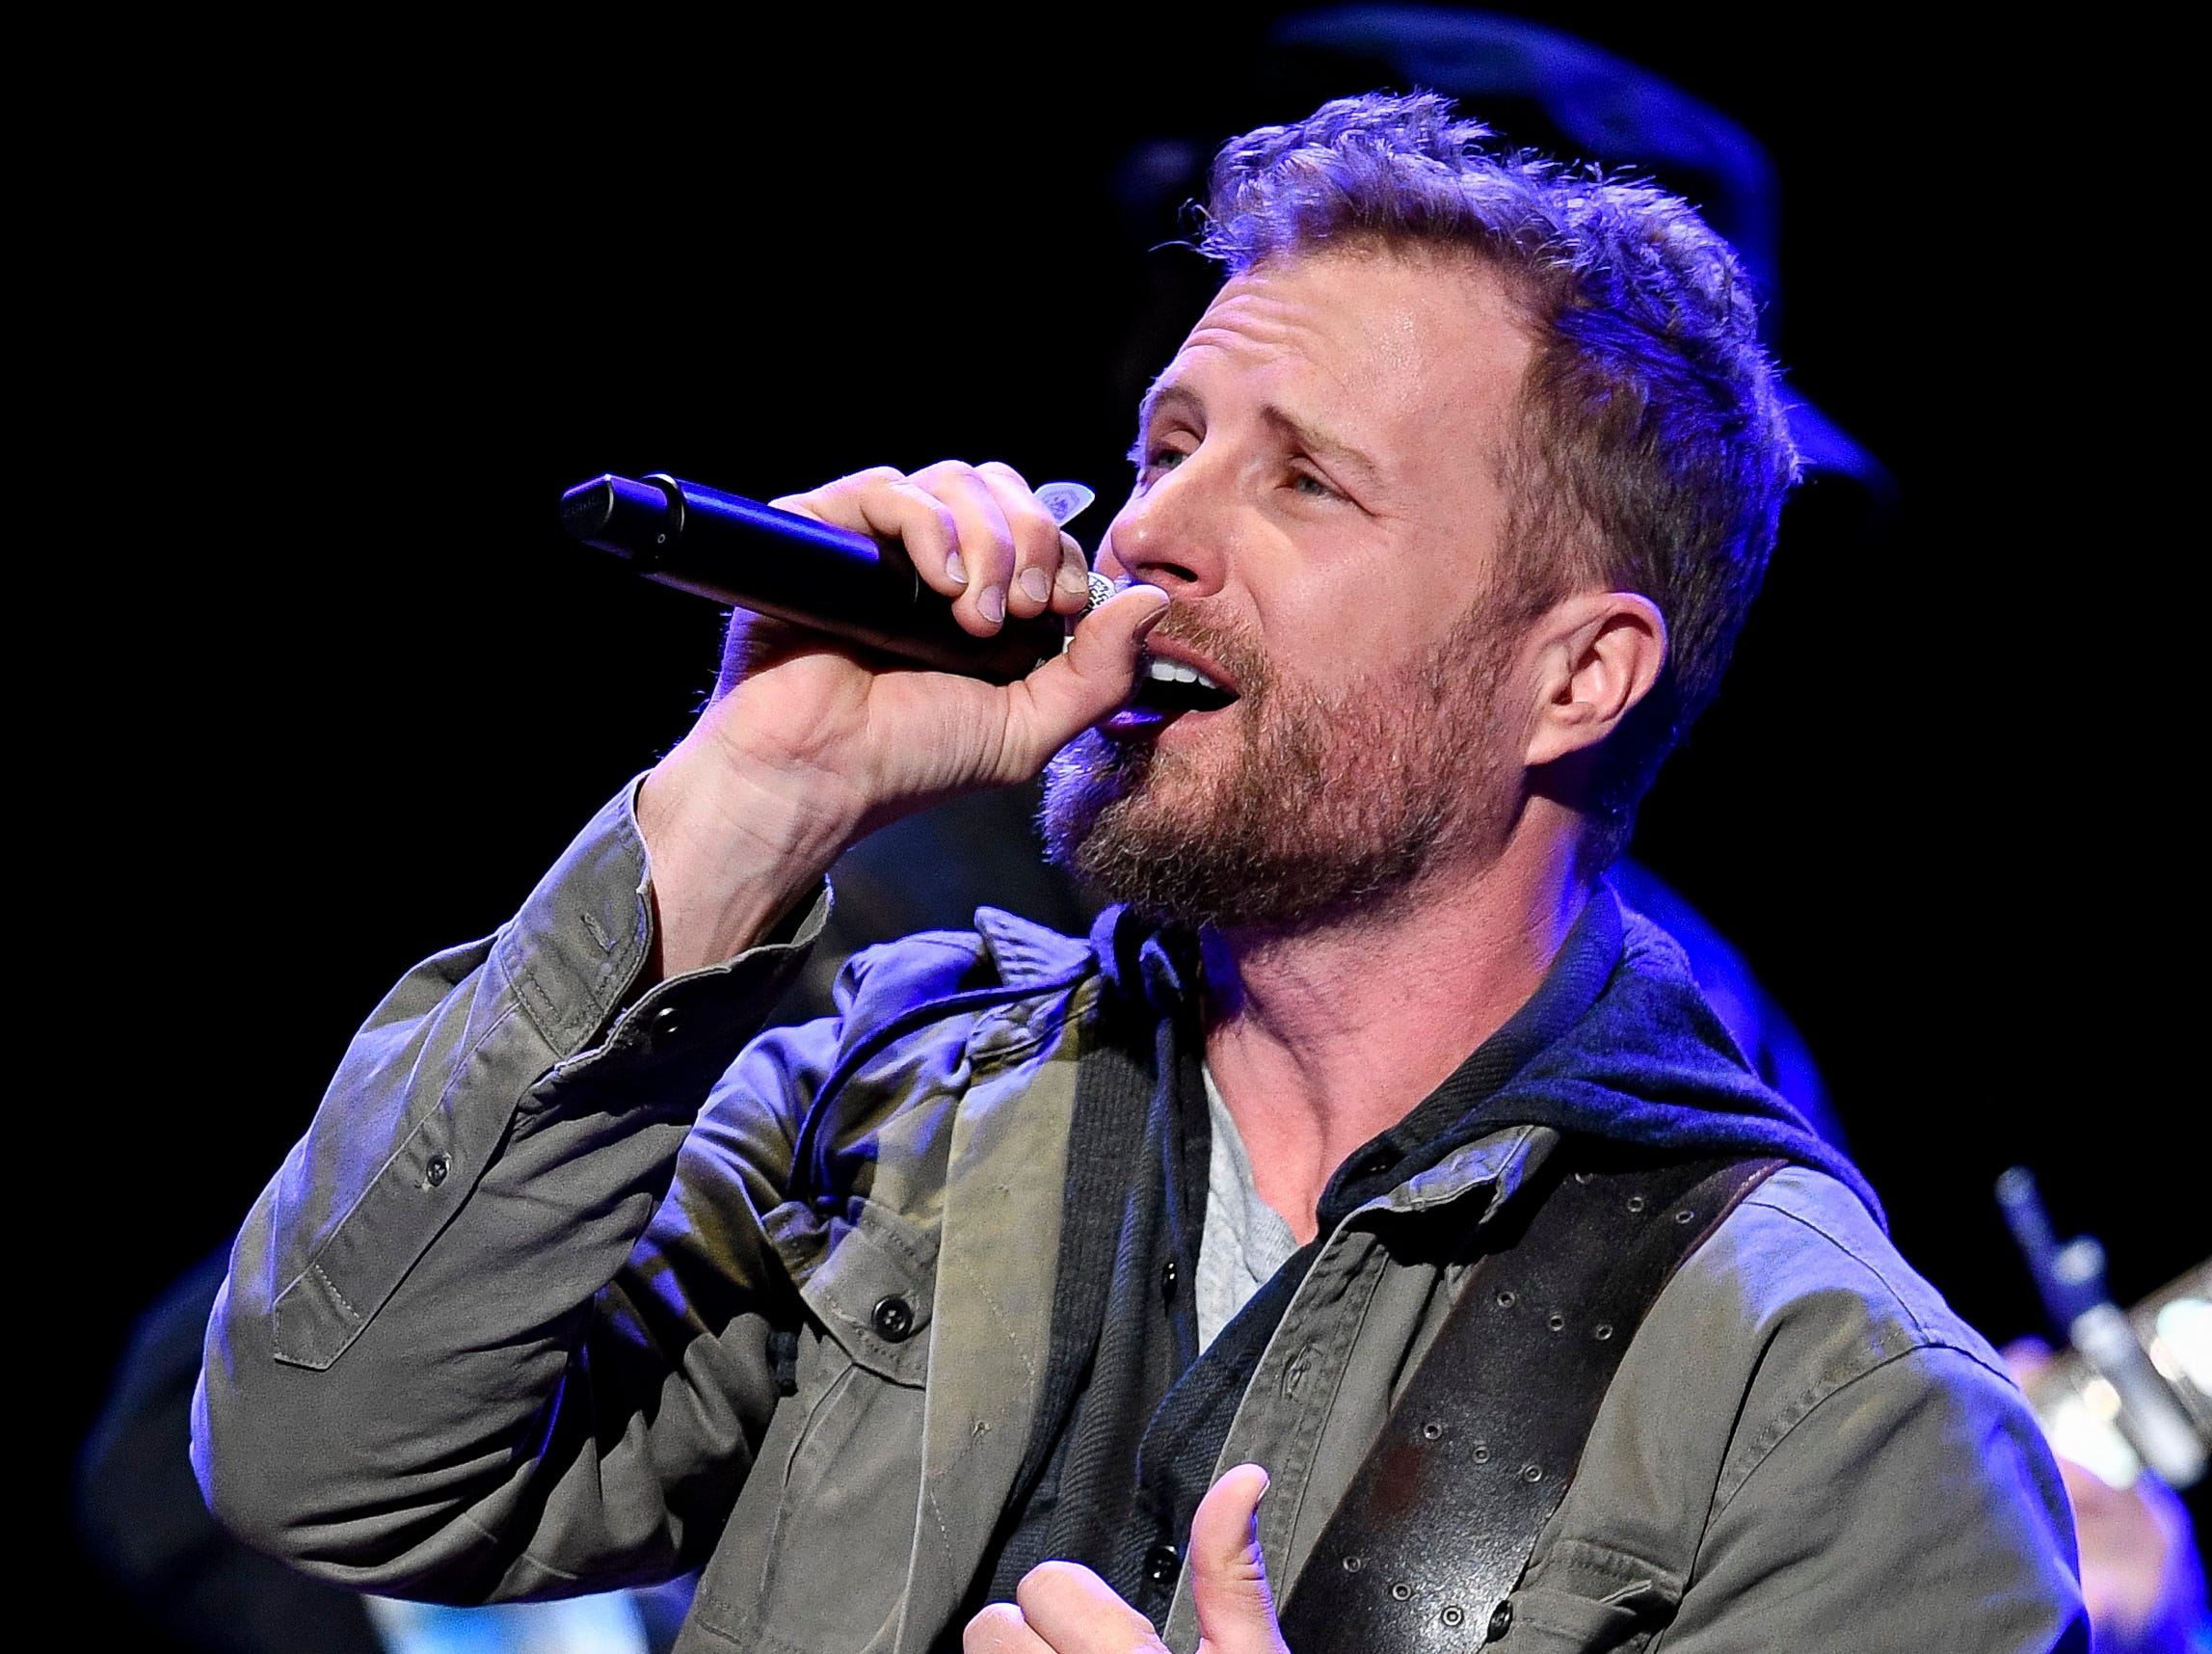 Dierks Bentley performs during the C'Ya On The Flipside Benefit Concert at the Grand Ole Opry House in Nashville, Tenn., Wednesday, Jan. 9, 2019.